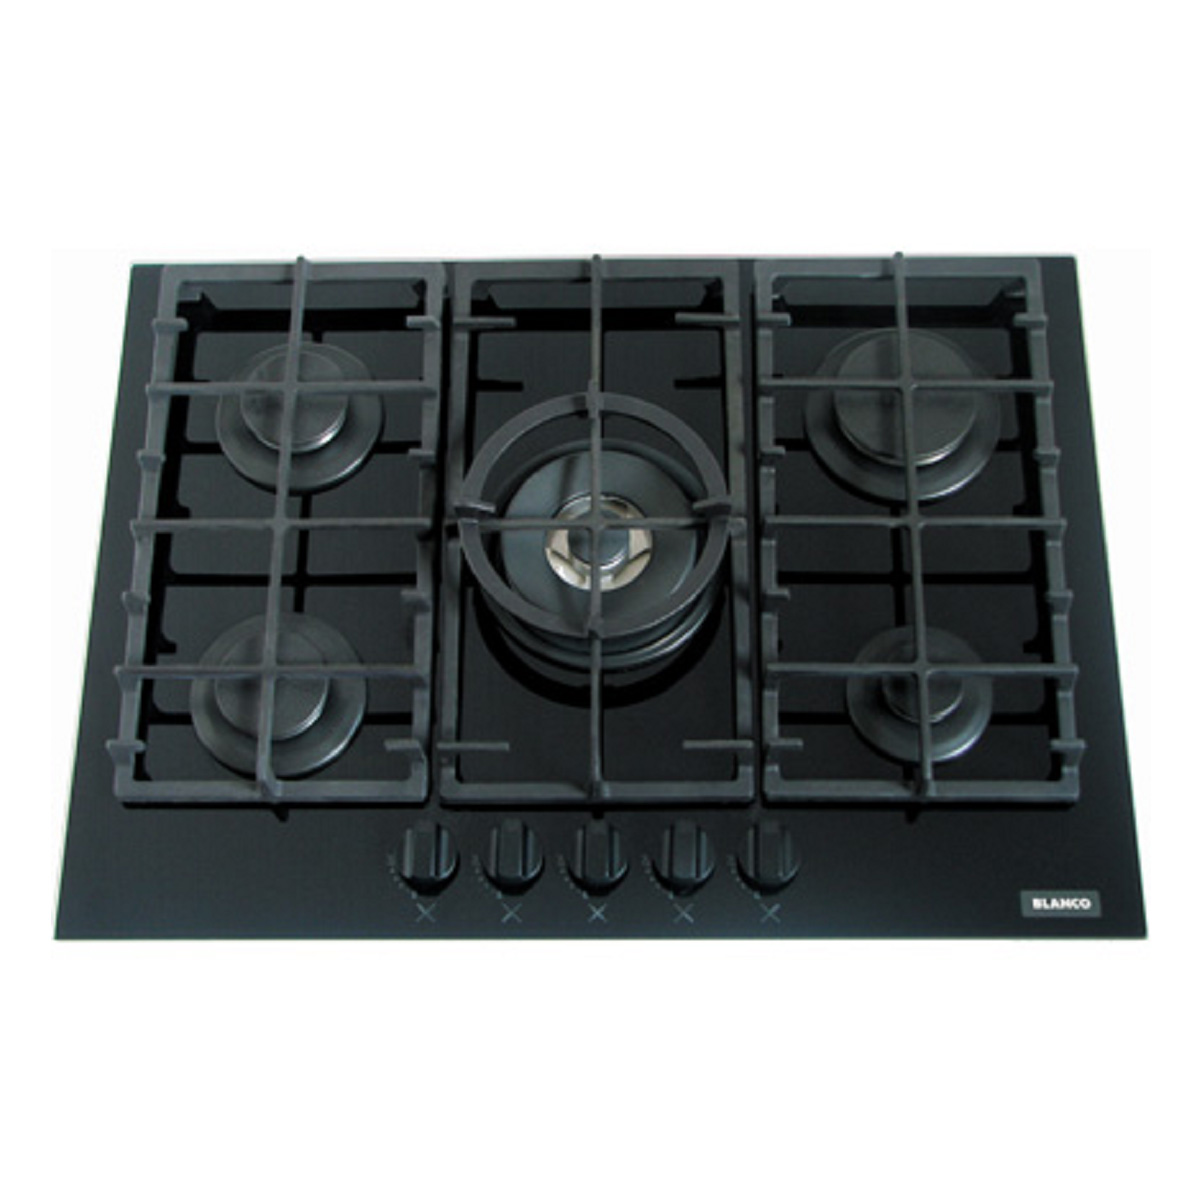 Blanco Gas Cooktop CGG705WFFC